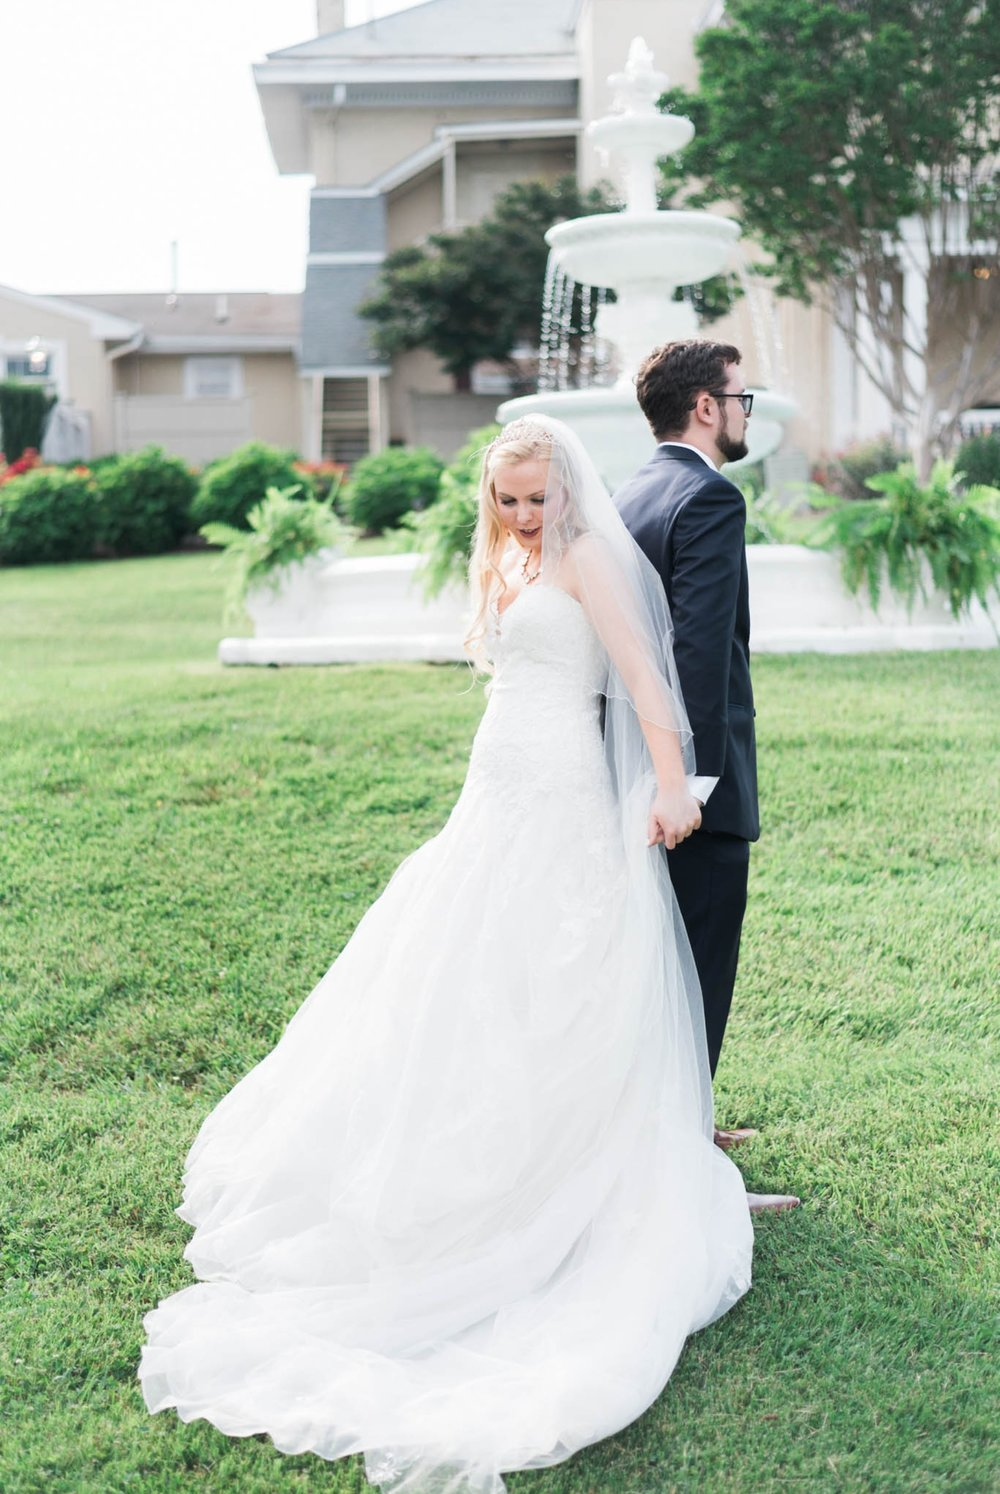 bedfordcolumns_entwinedevents_Lynchburgweddingphotographer_virginiaweddingphotographer_tarahlaunce 22.jpg